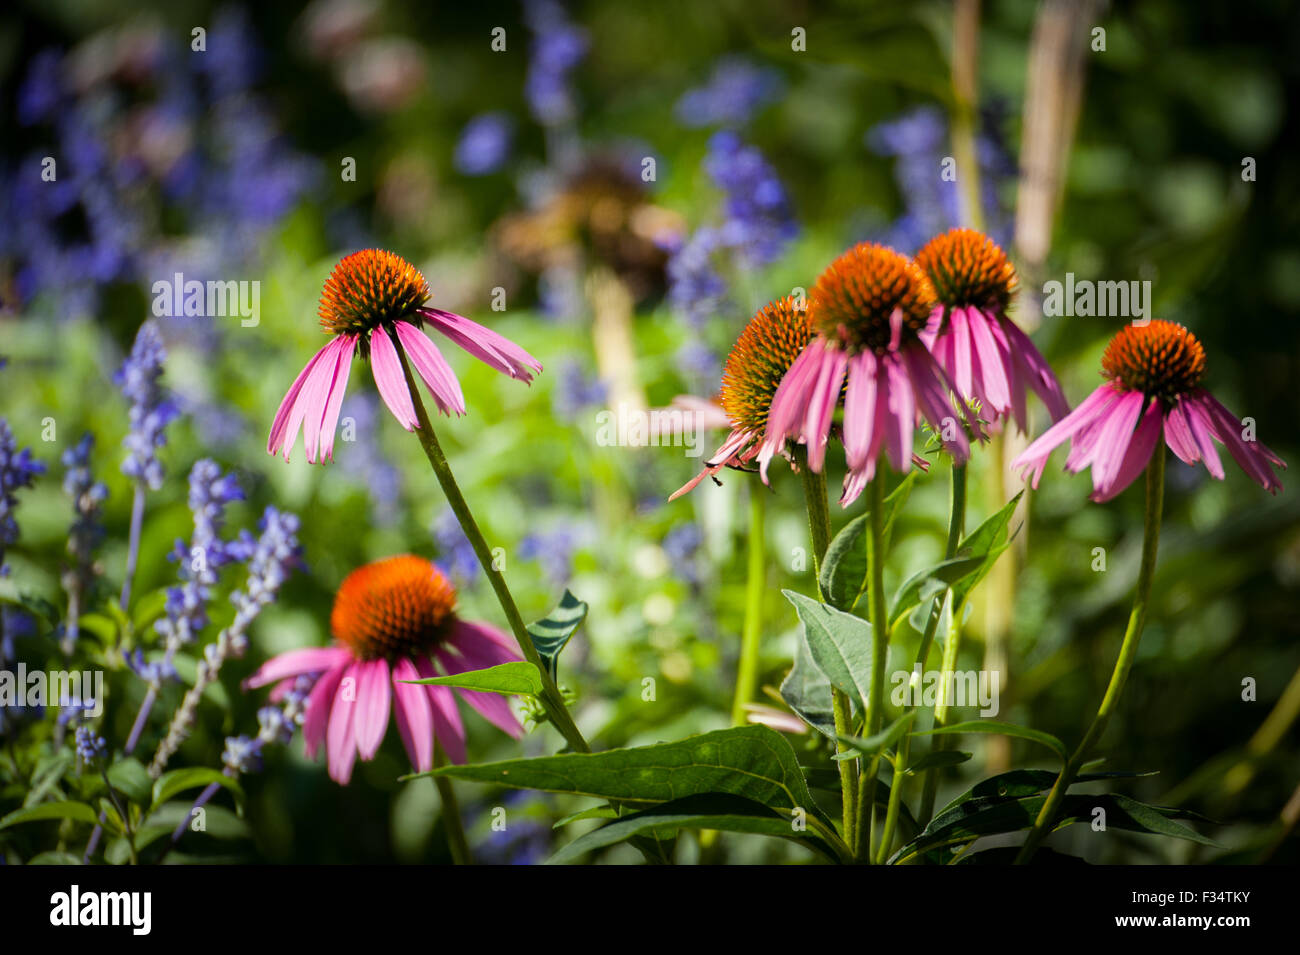 Beautiful Flowers - Stock Image